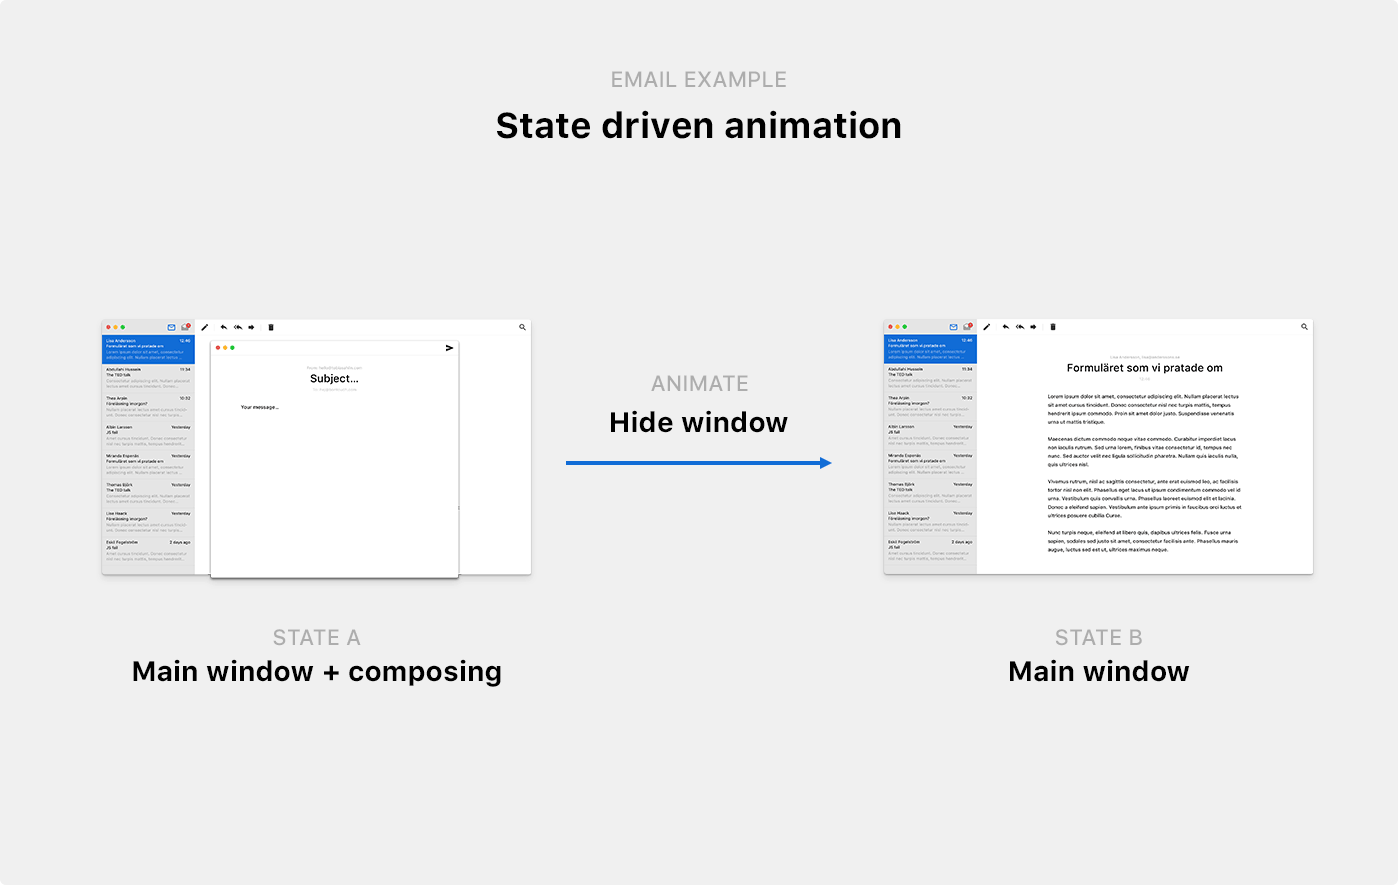 Illustrated example of state driven animation, showing the transition between two states of an email app; the main window with a composing window overlaying it (state A), and after closing it, just the main window (state b)